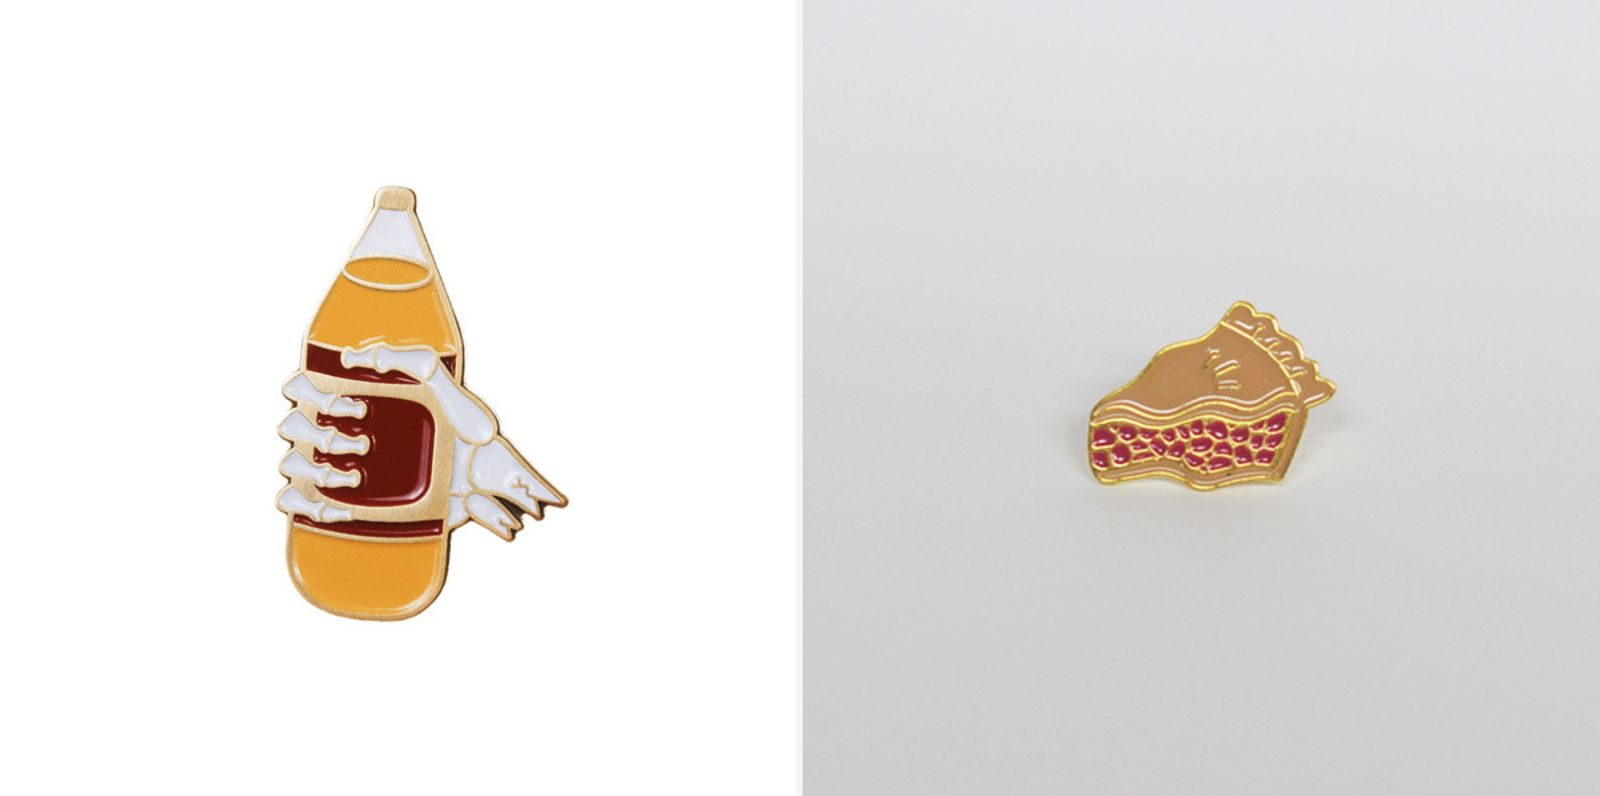 Food-Themed Pins and Brooches - Cool Hunting